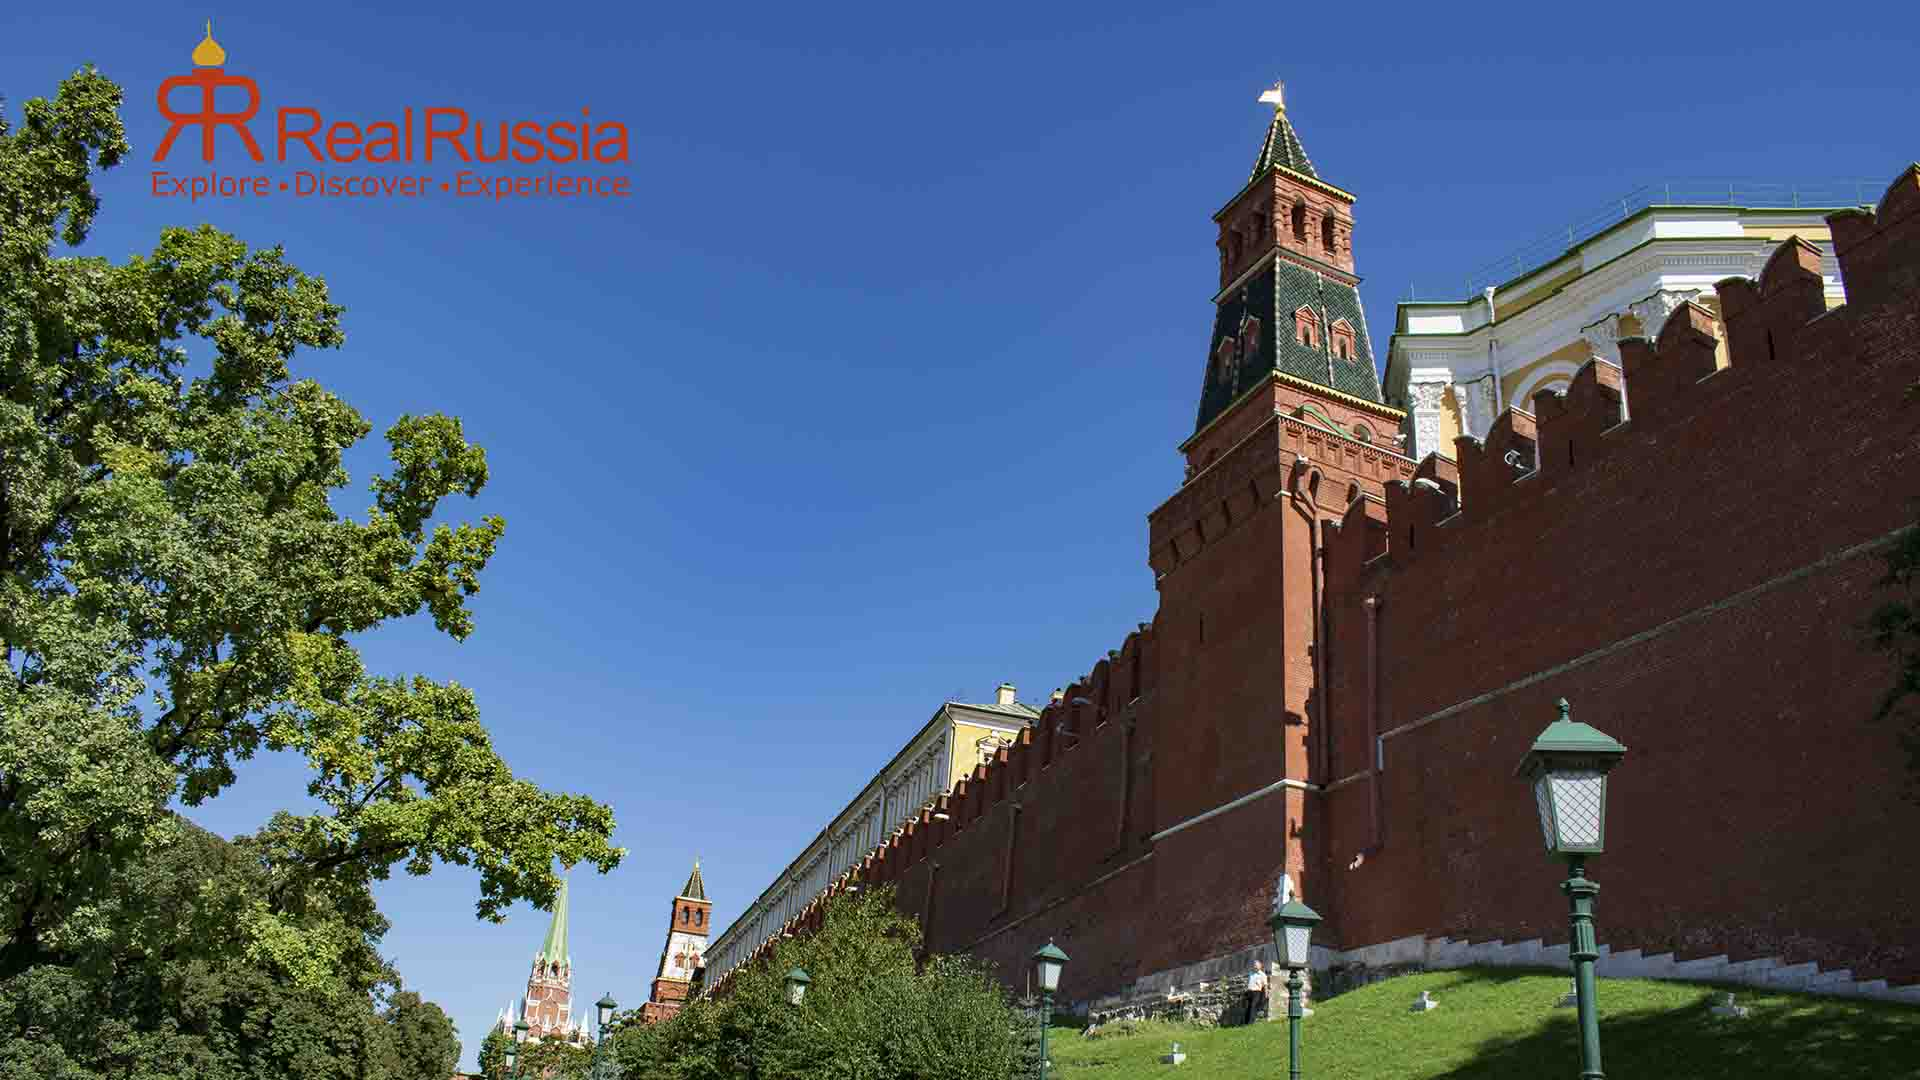 The walls of the Kremlin, Moscow